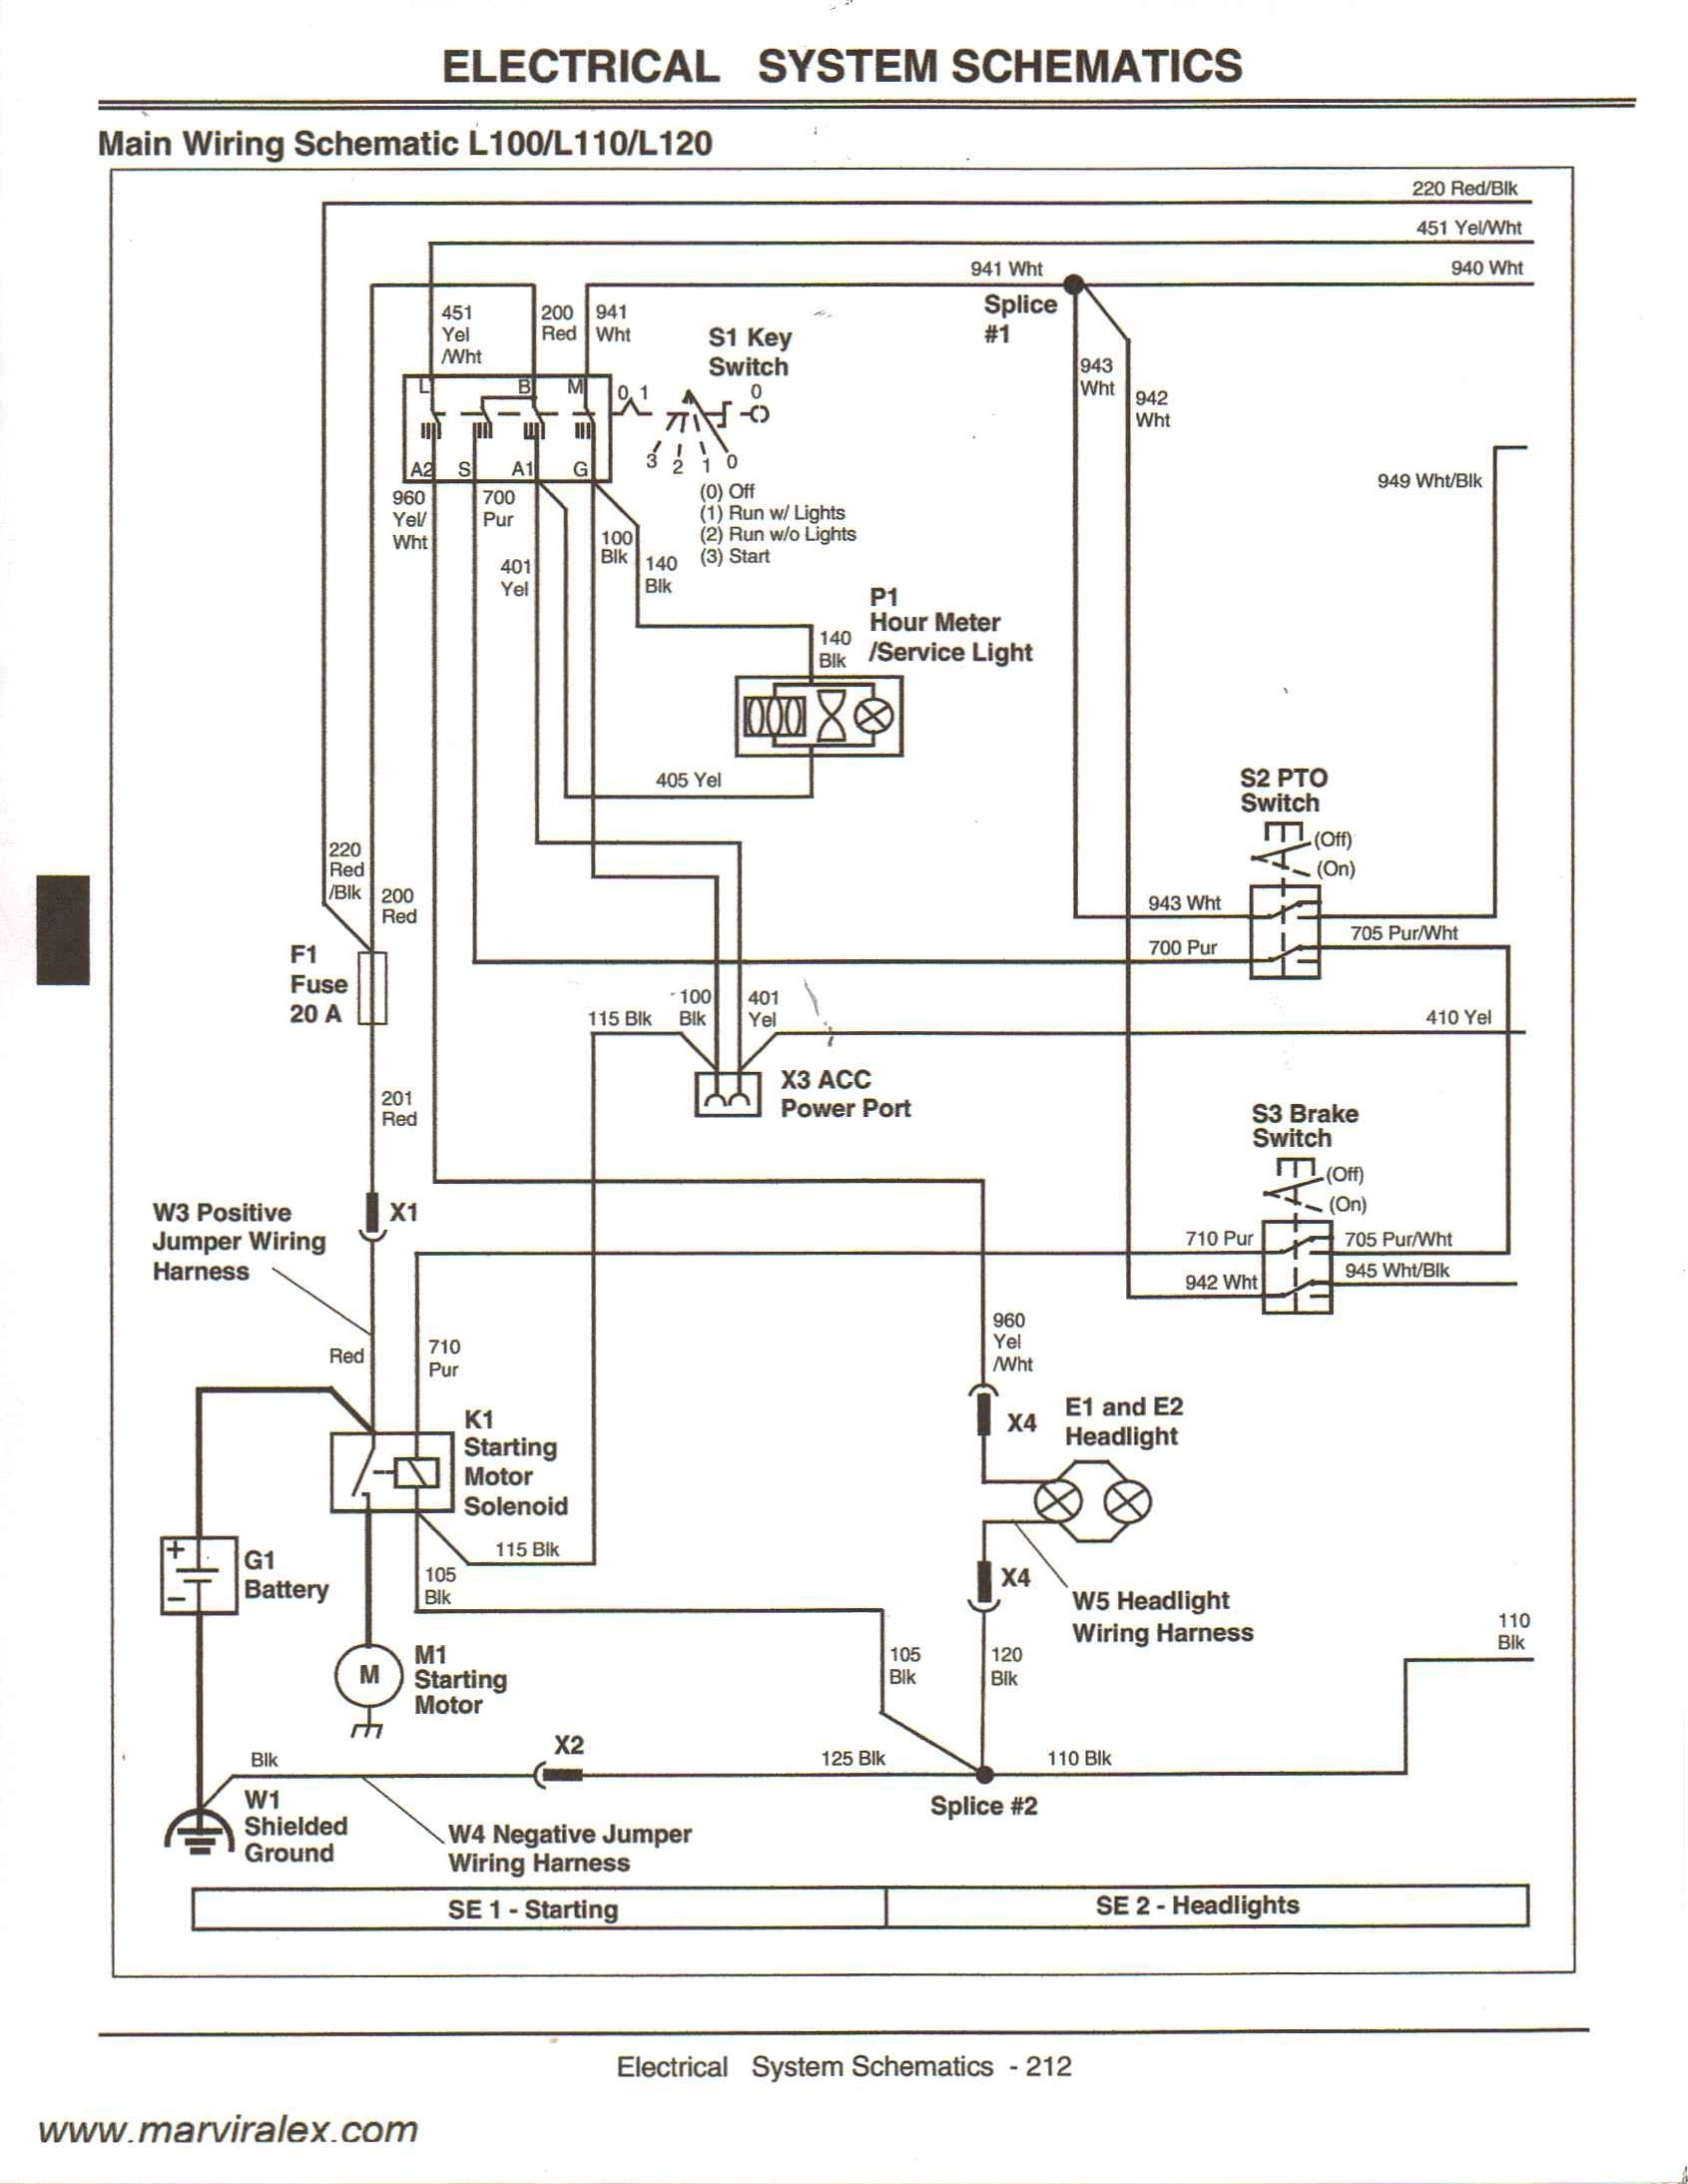 jacobs ignition system wiring diagram free download willys ignition wiring diagram free download #9